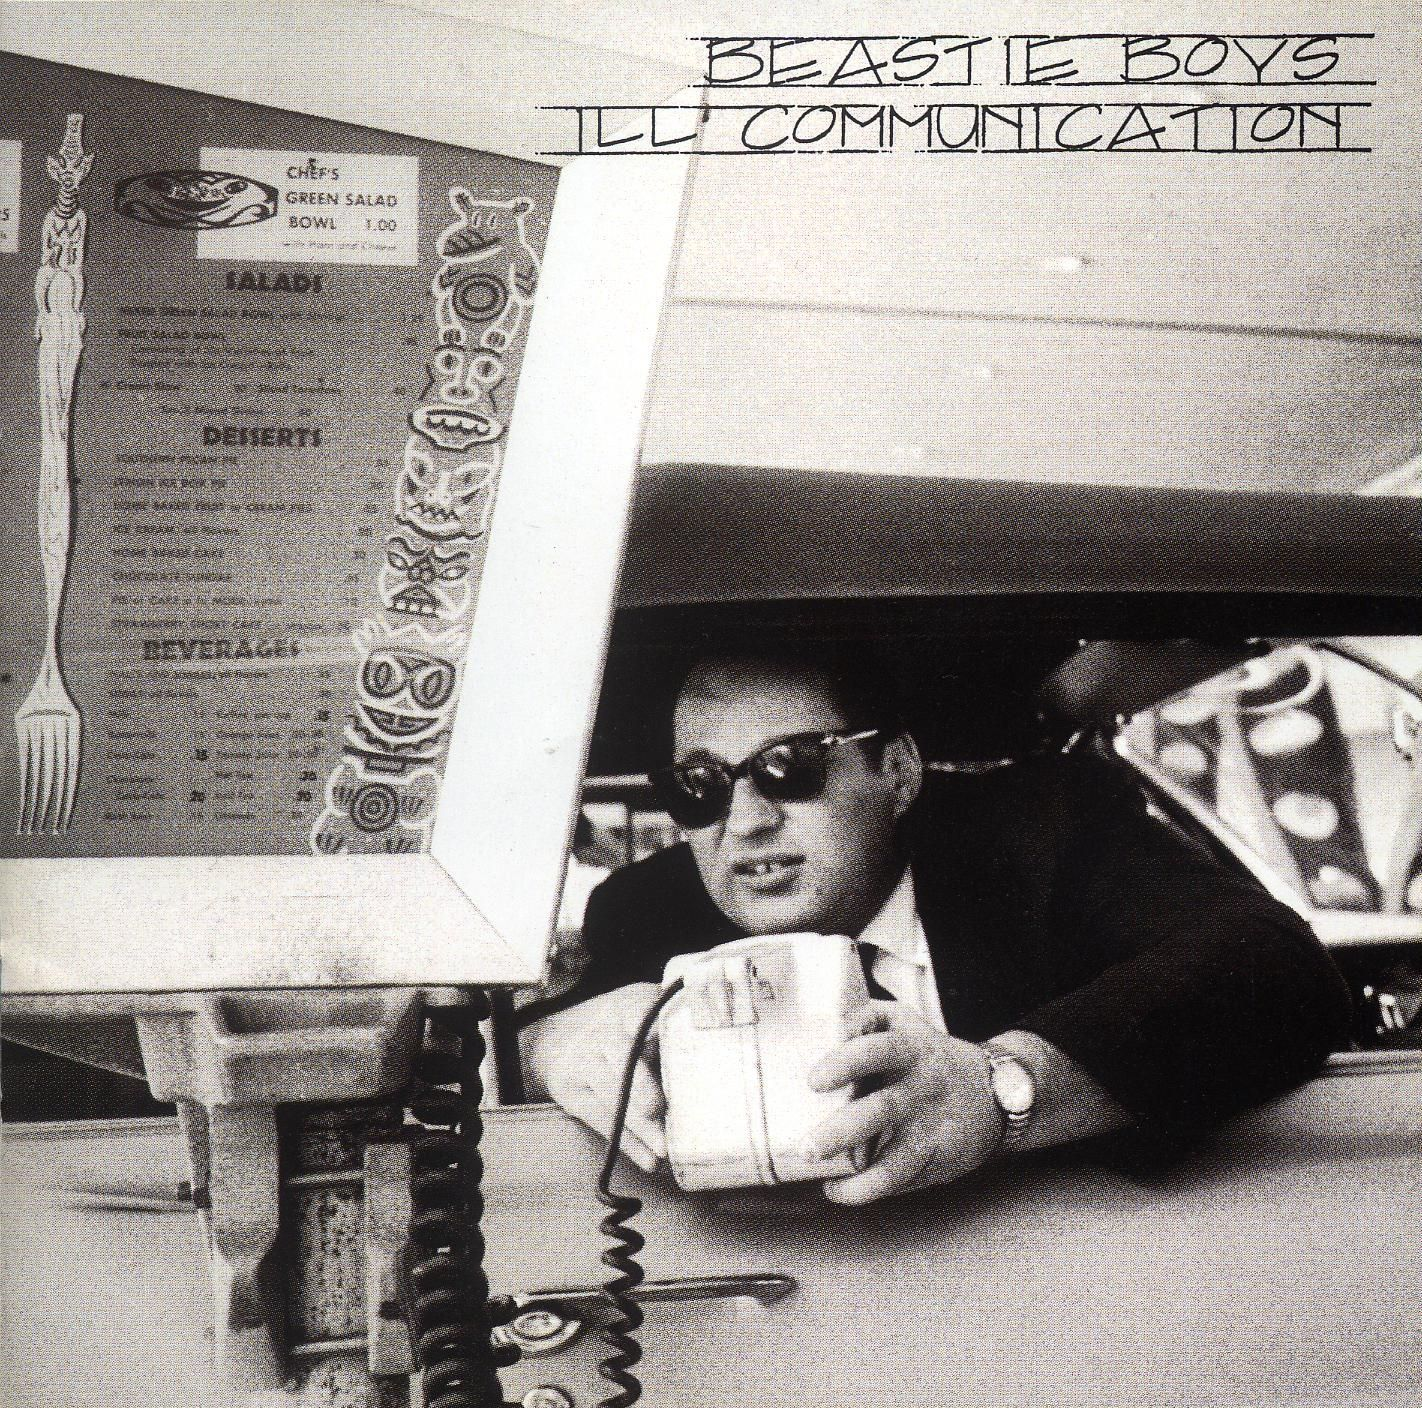 Beastie Boys | III Communication | 1994